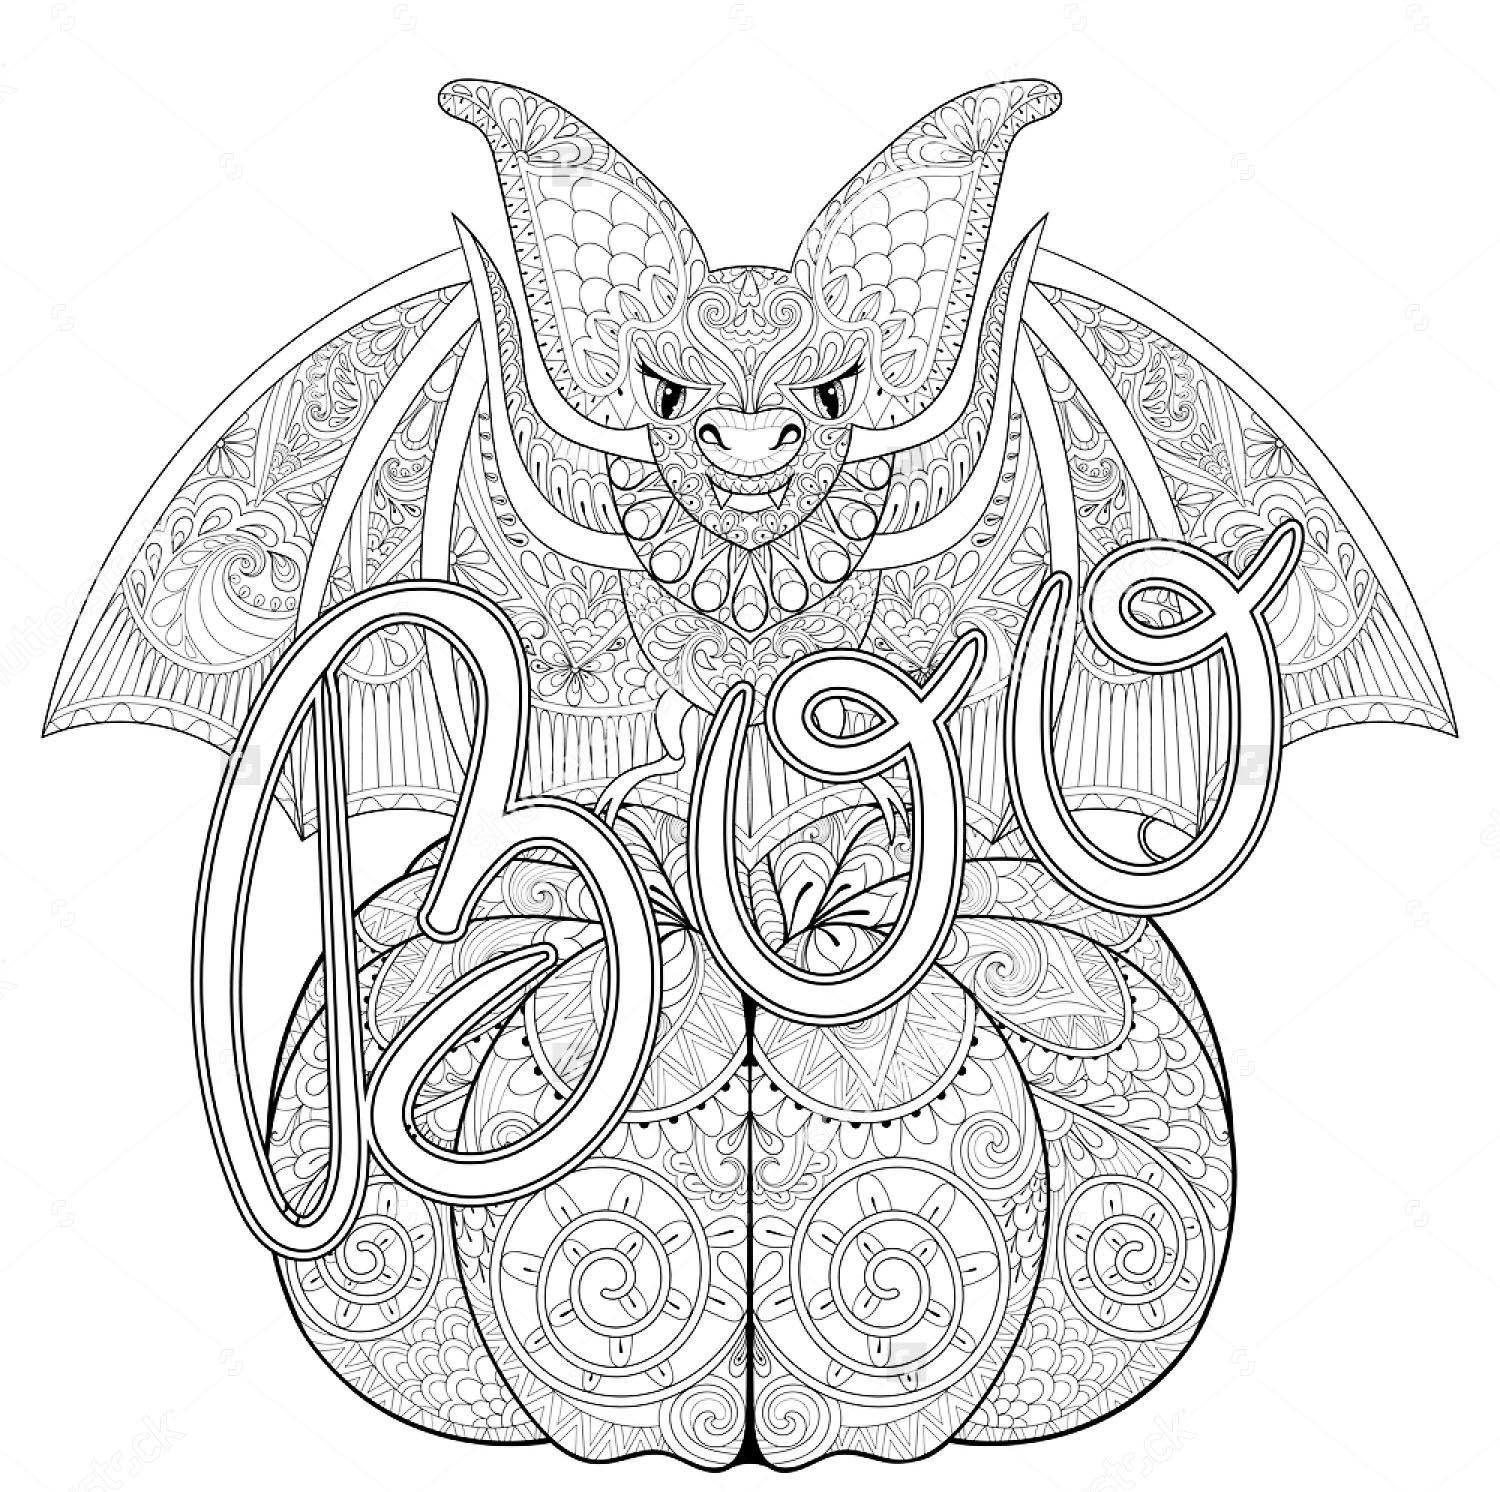 Coloring pictures for adults - Coloring Adult Halloween Zentangle Bat Free To Print